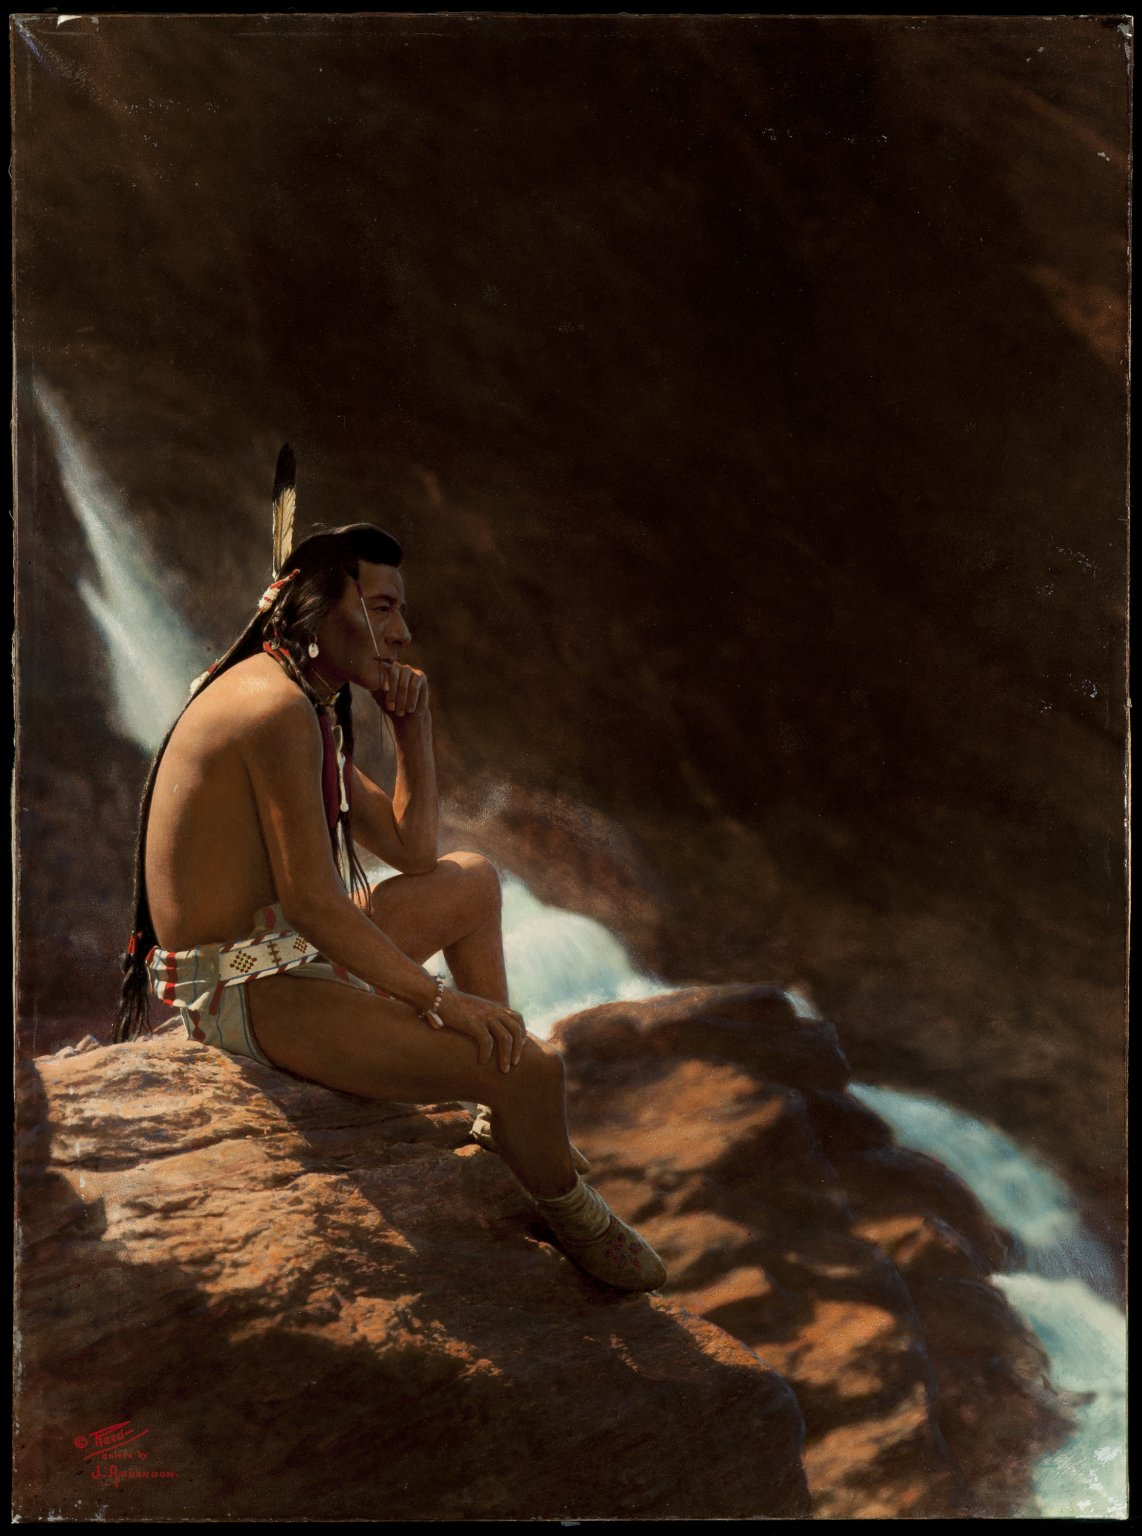 Northern Plains Indian man contemplating